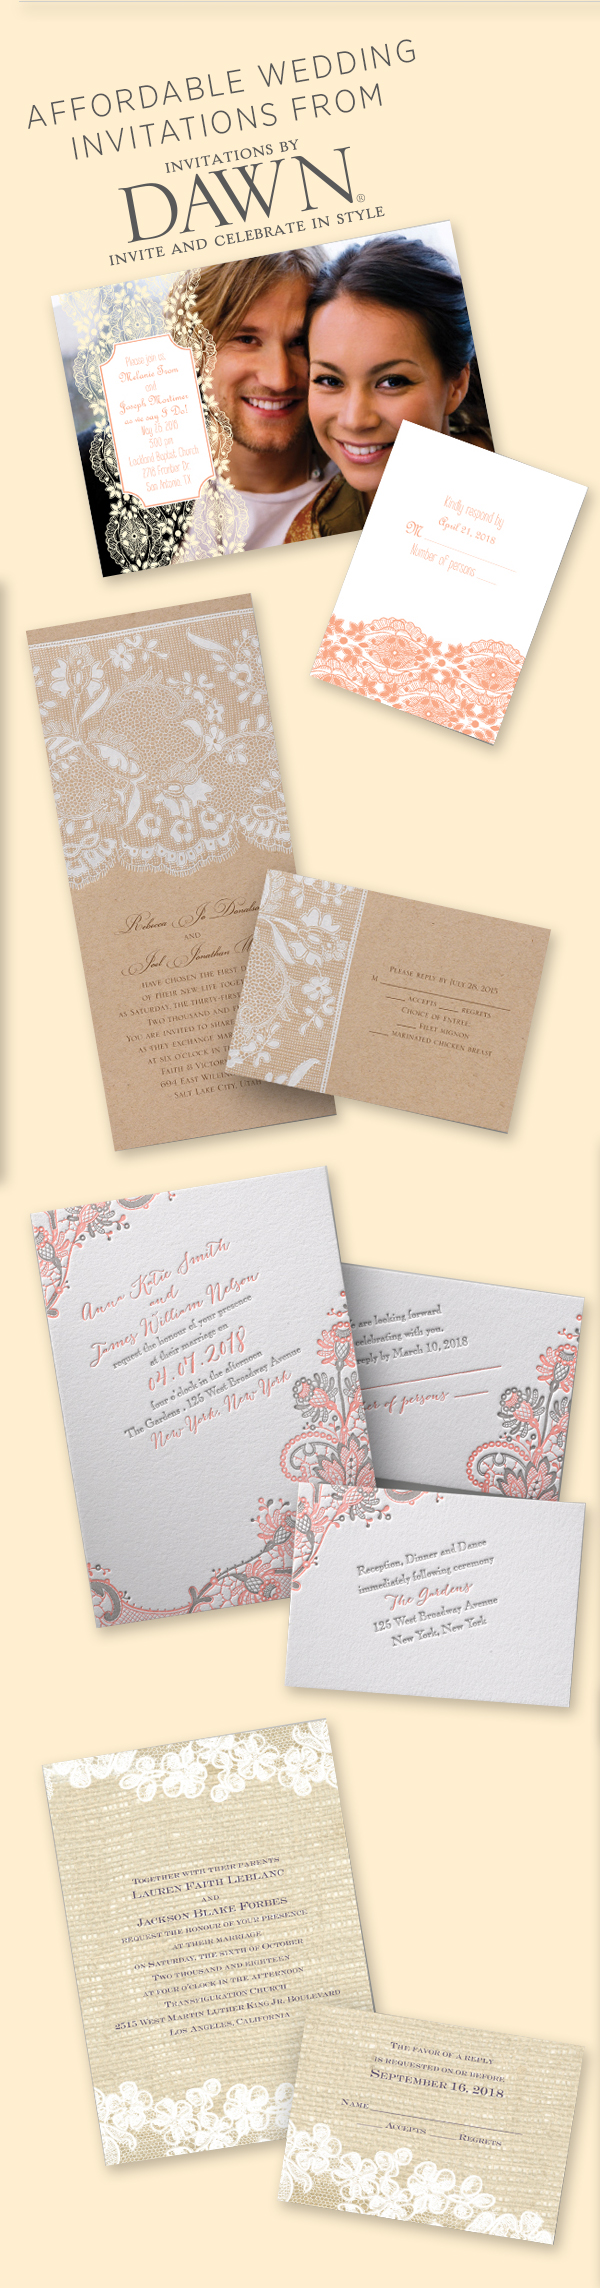 Lace Wedding Invitations from Invitations by Dawn